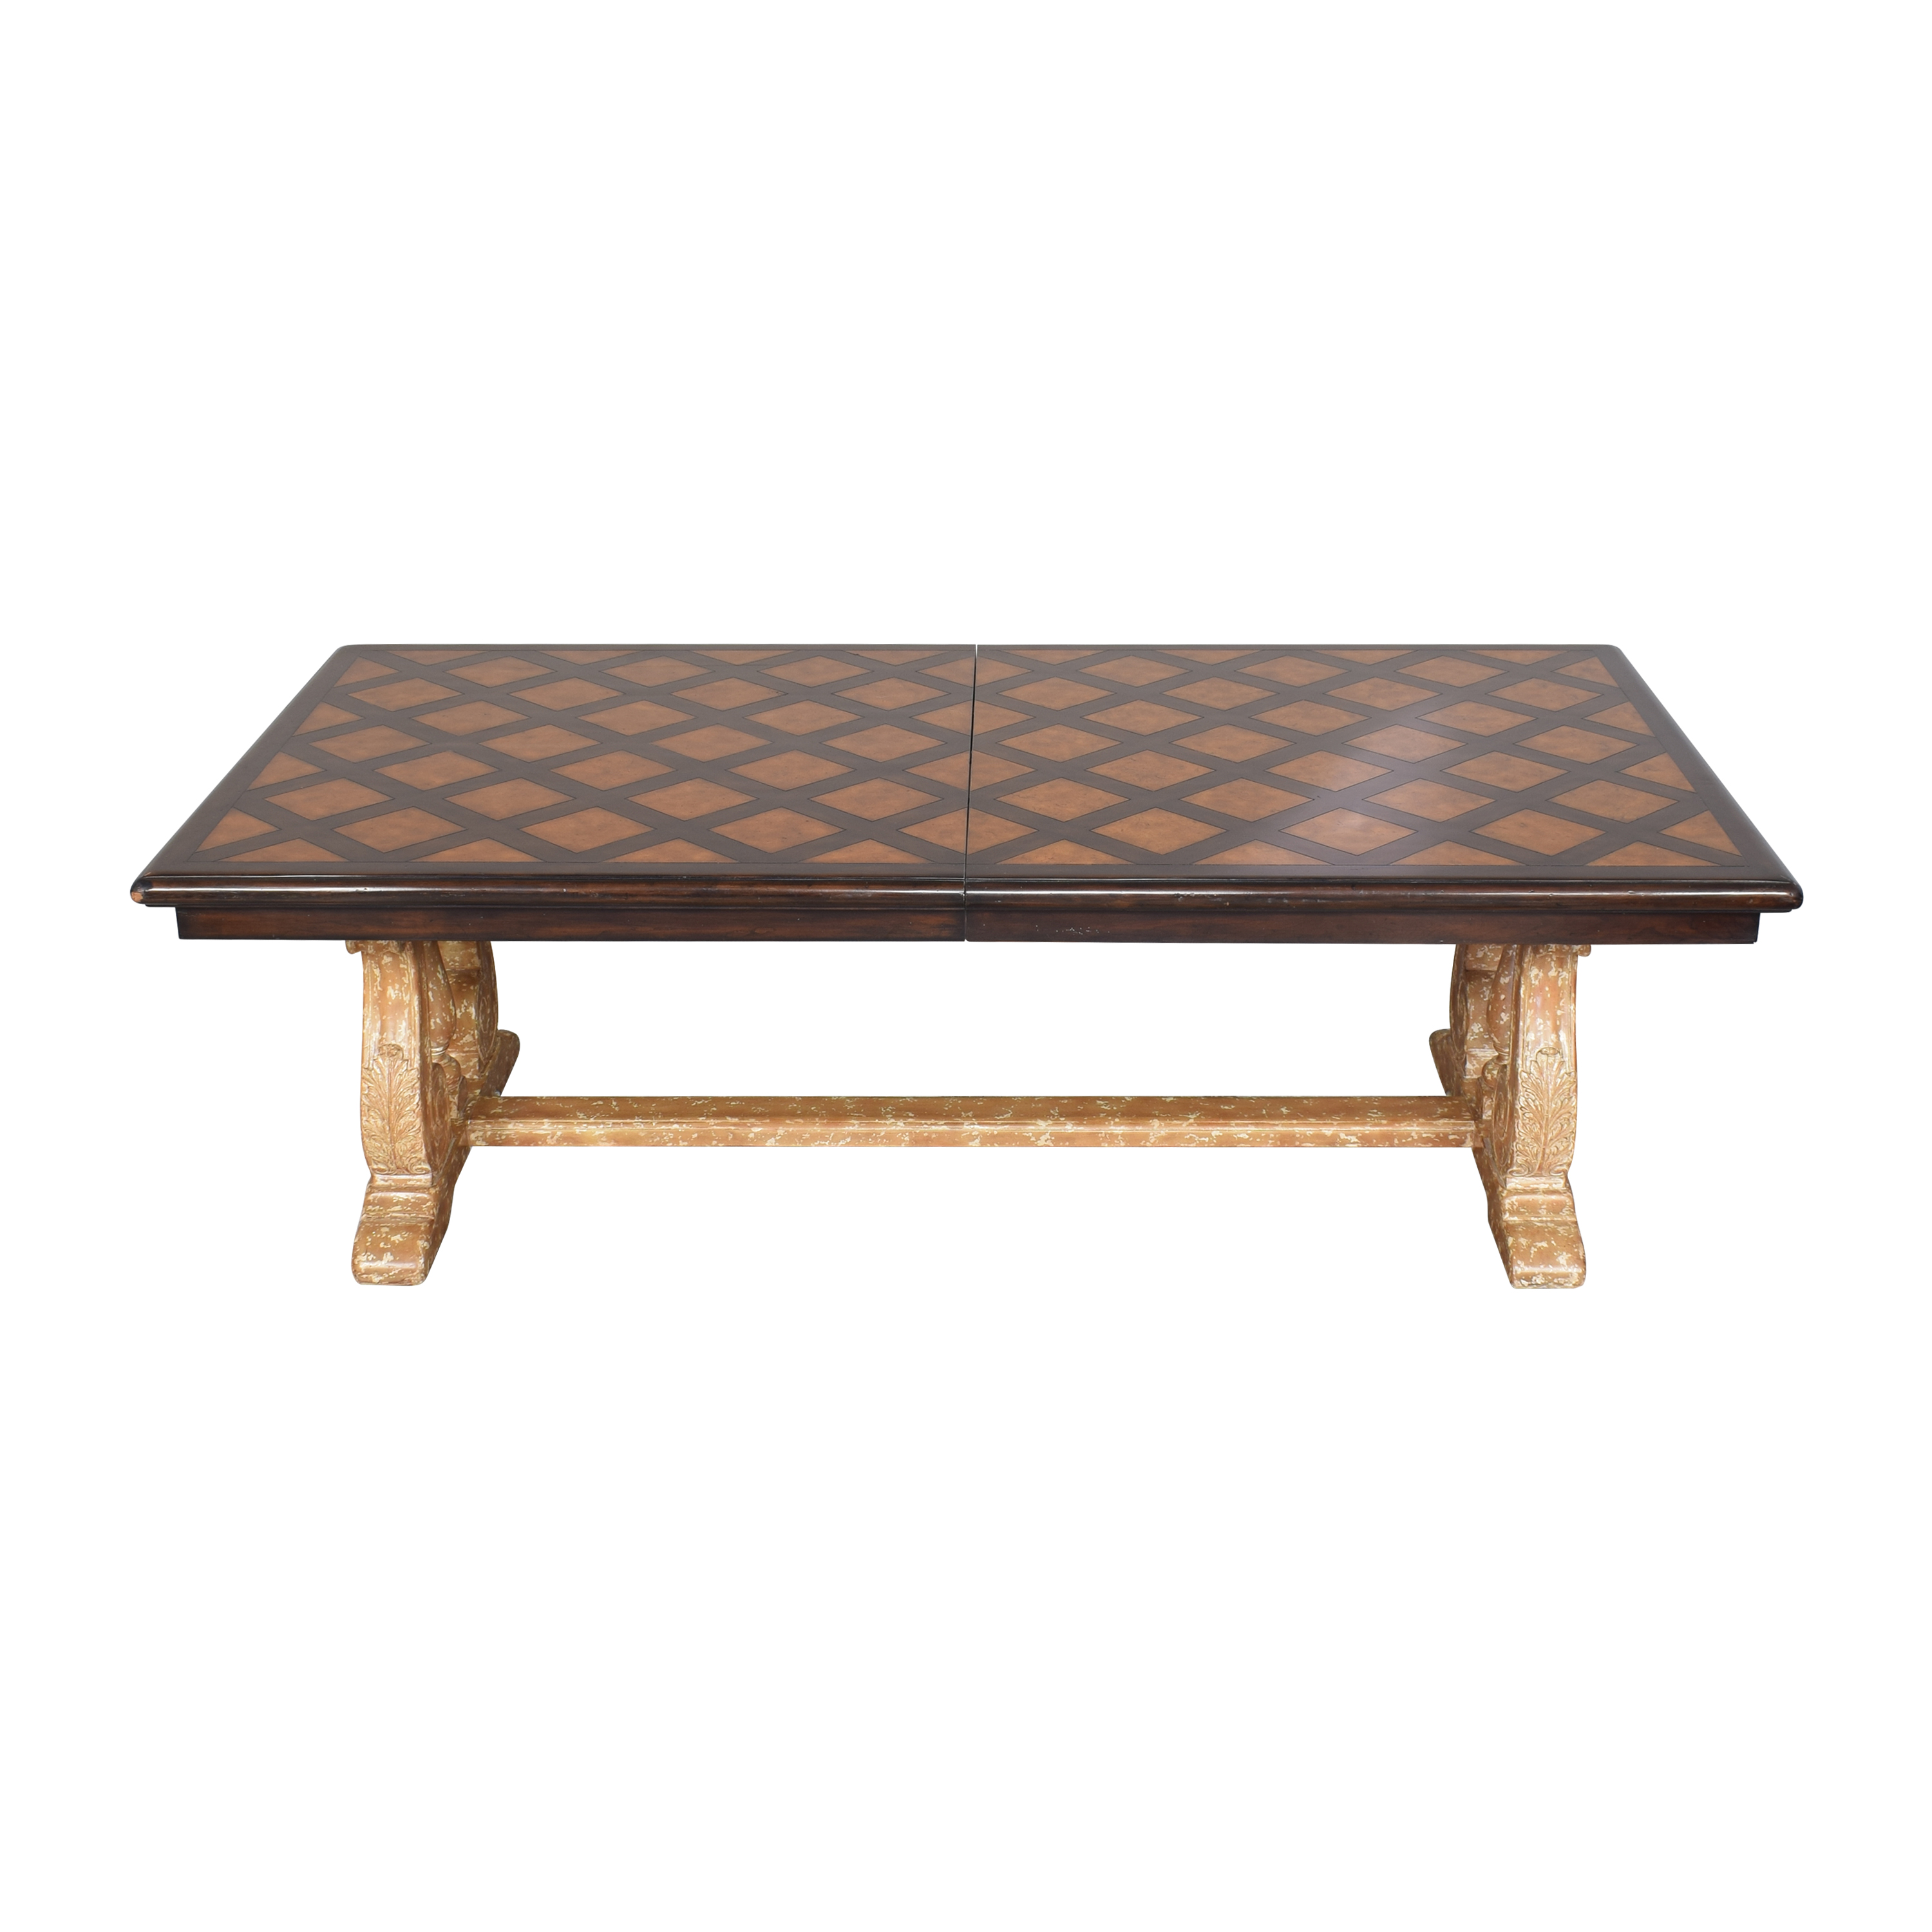 Theodore Alexander Theodore Alexander Madrid Extension Dining Table second hand